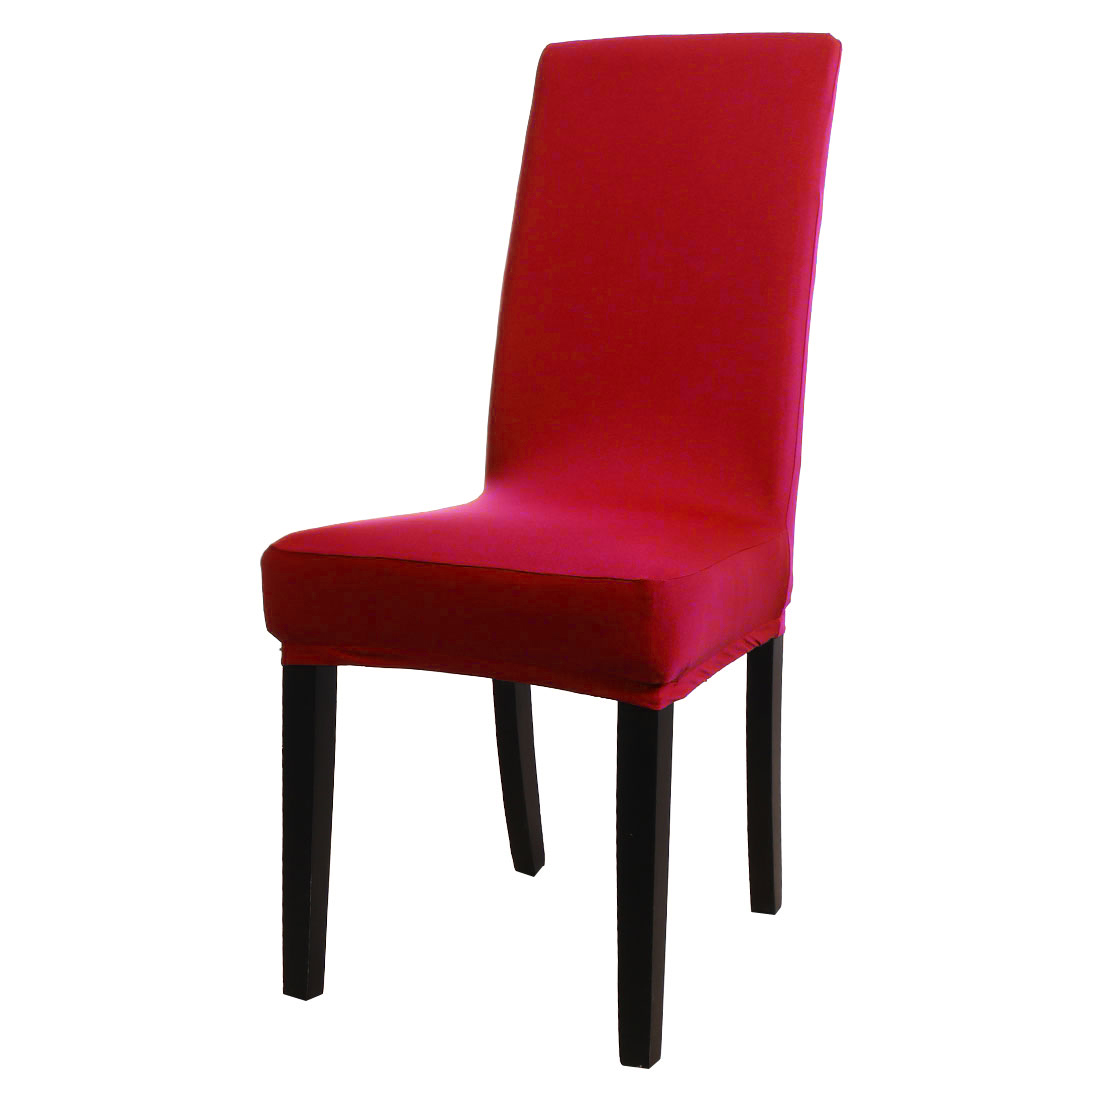 wholesale lycra chair covers australia pads target spandex stretch washable short dining cover protector slipcover red